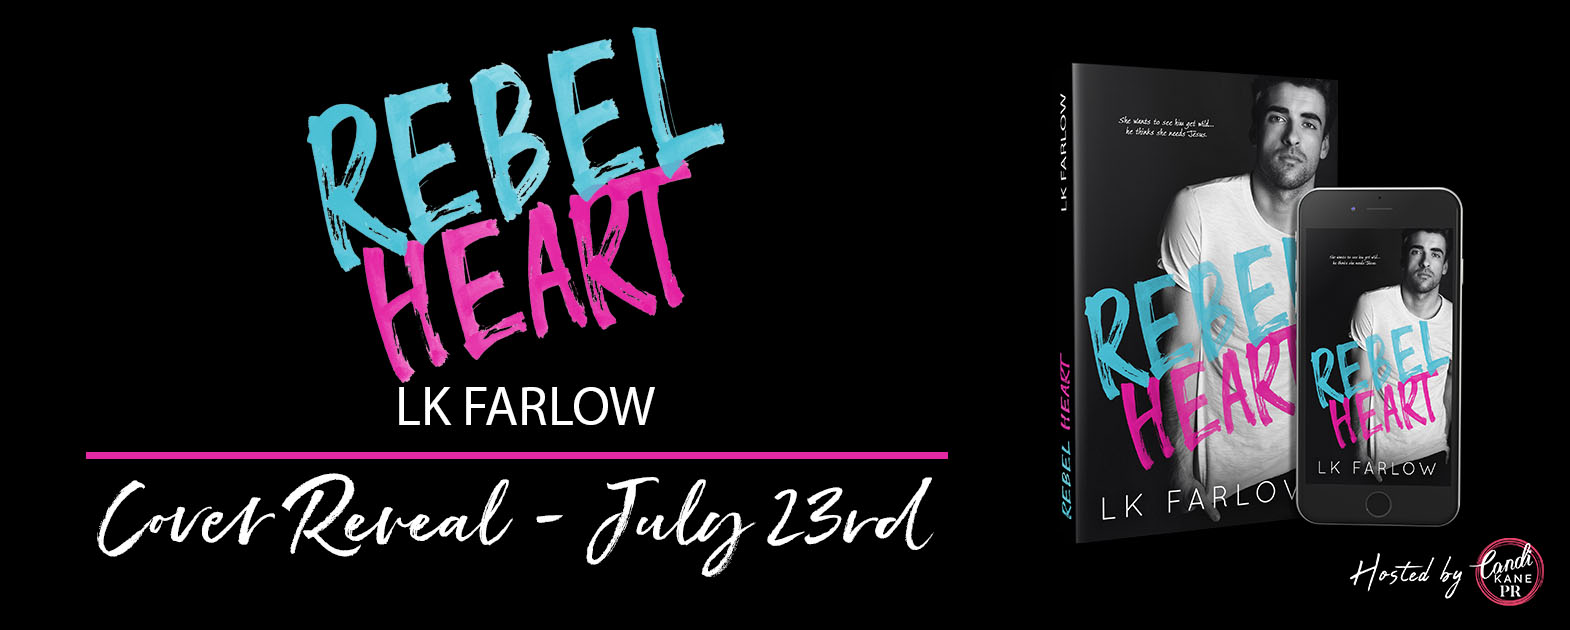 rebel heart cover reveal banner